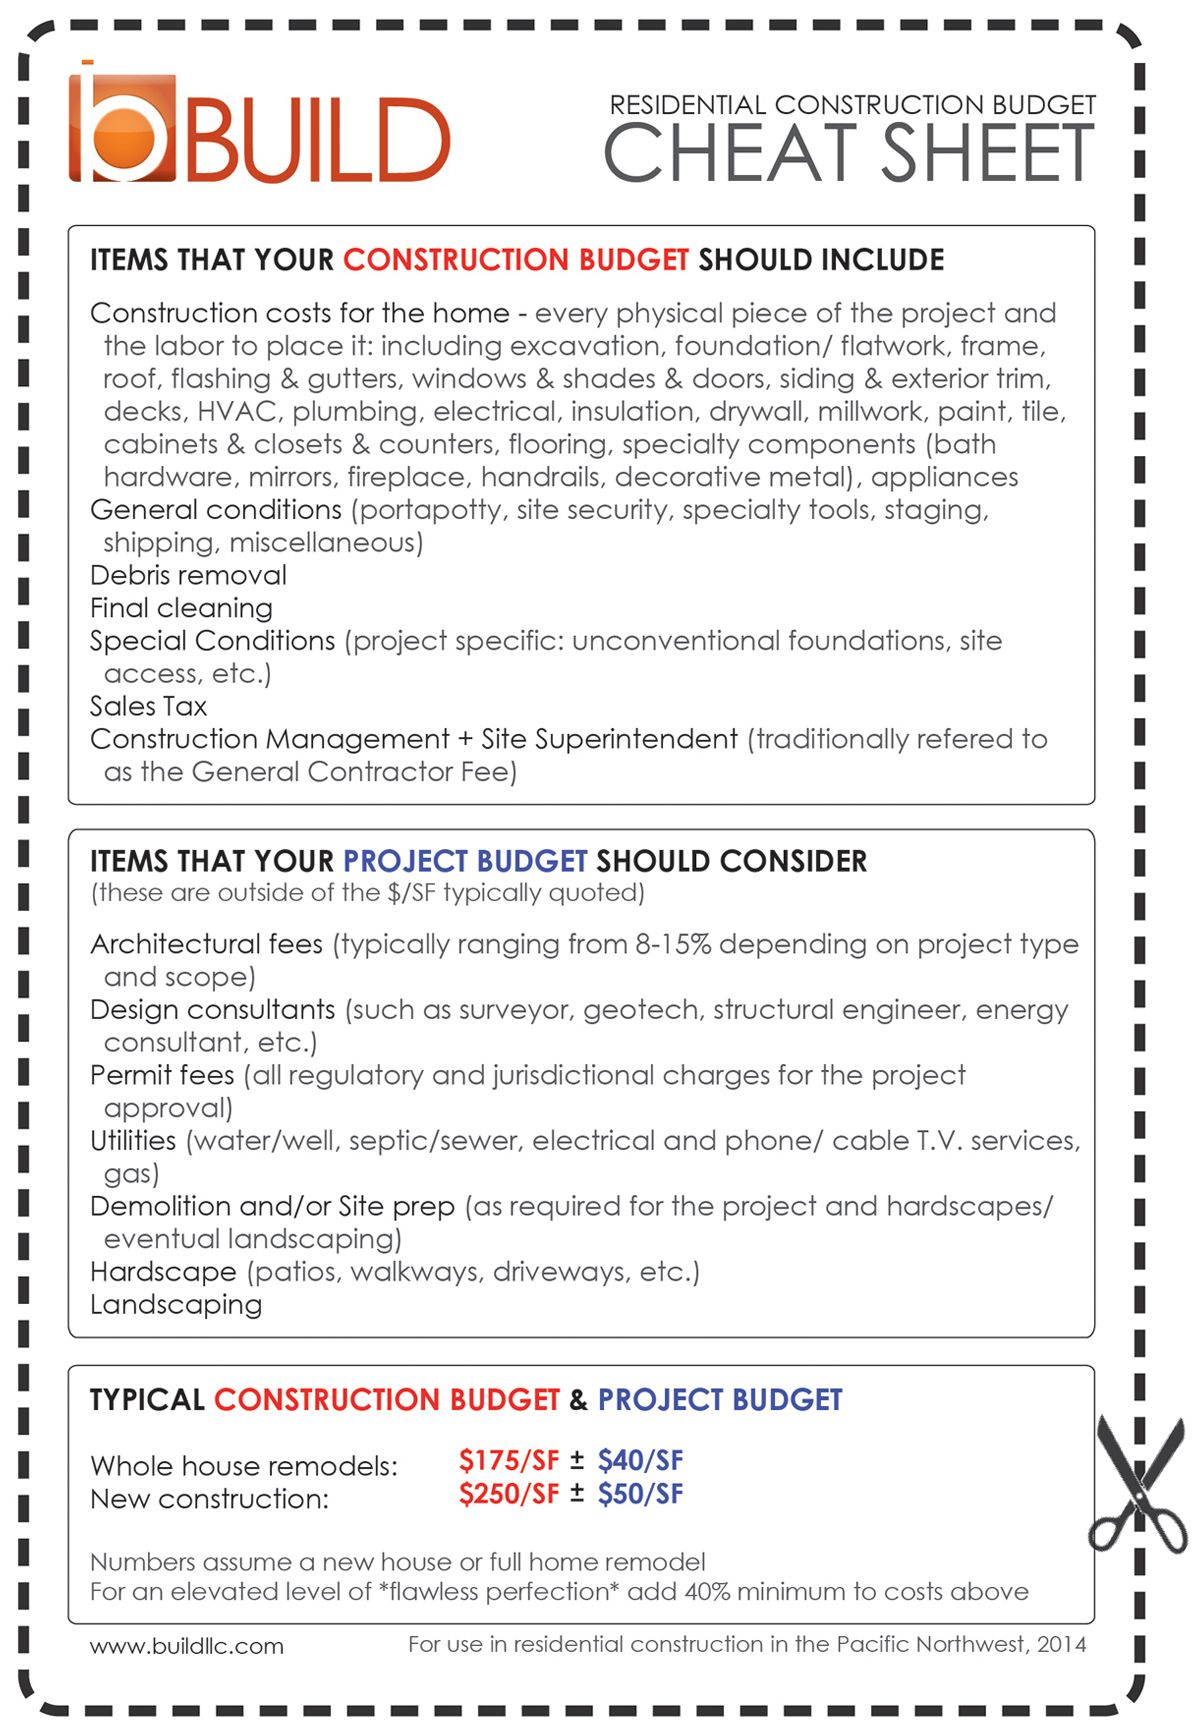 Defining a Construction Budget; The 2014 Cheat Sheet | Pinterest ...